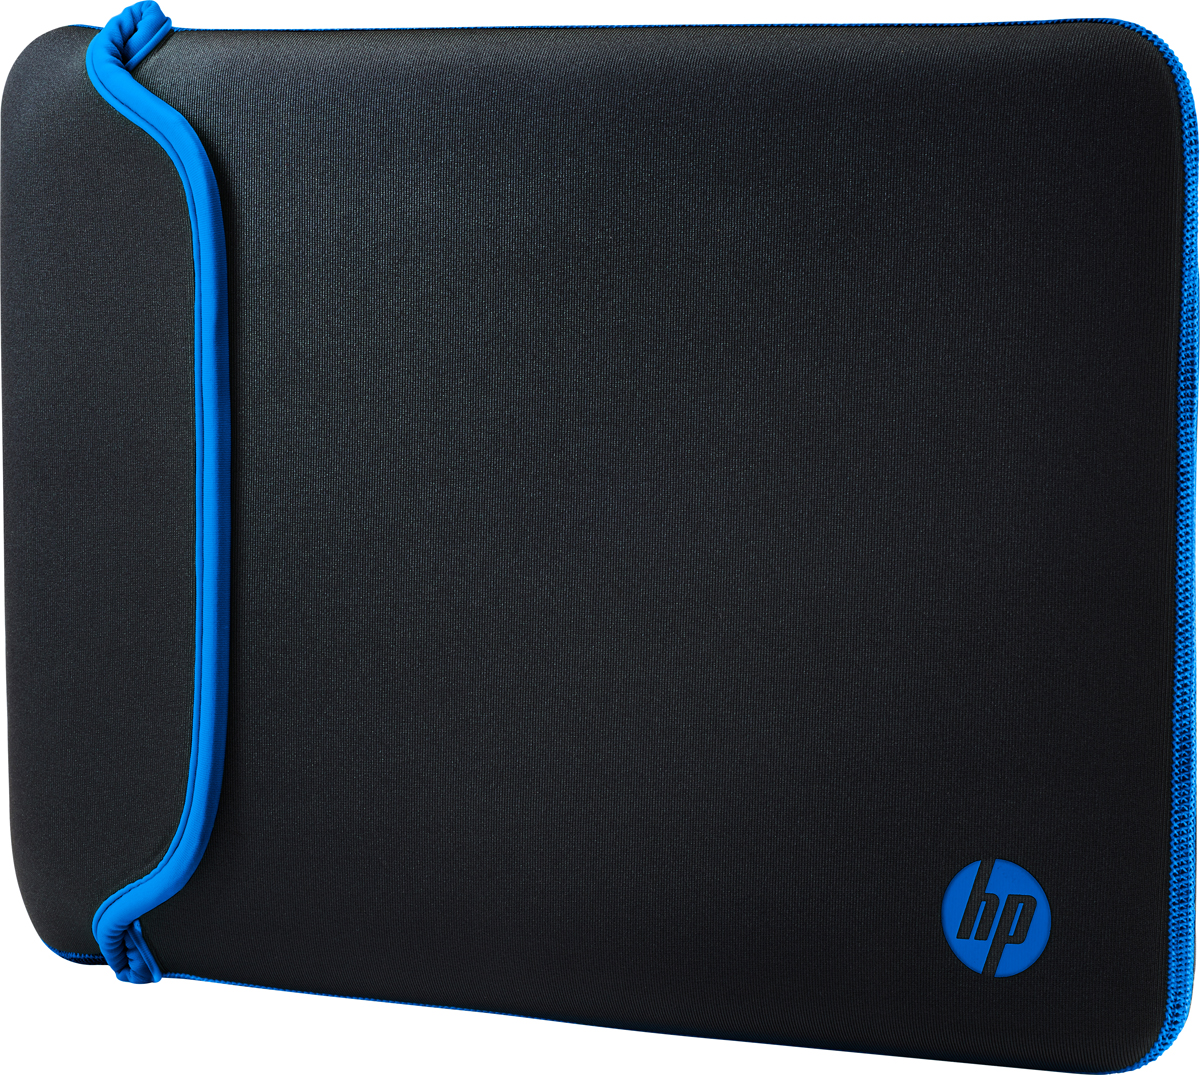 HP Neoprene Sleeve чехол для ноутбука 11.6, Black Blue (V5C21AA)1000391205